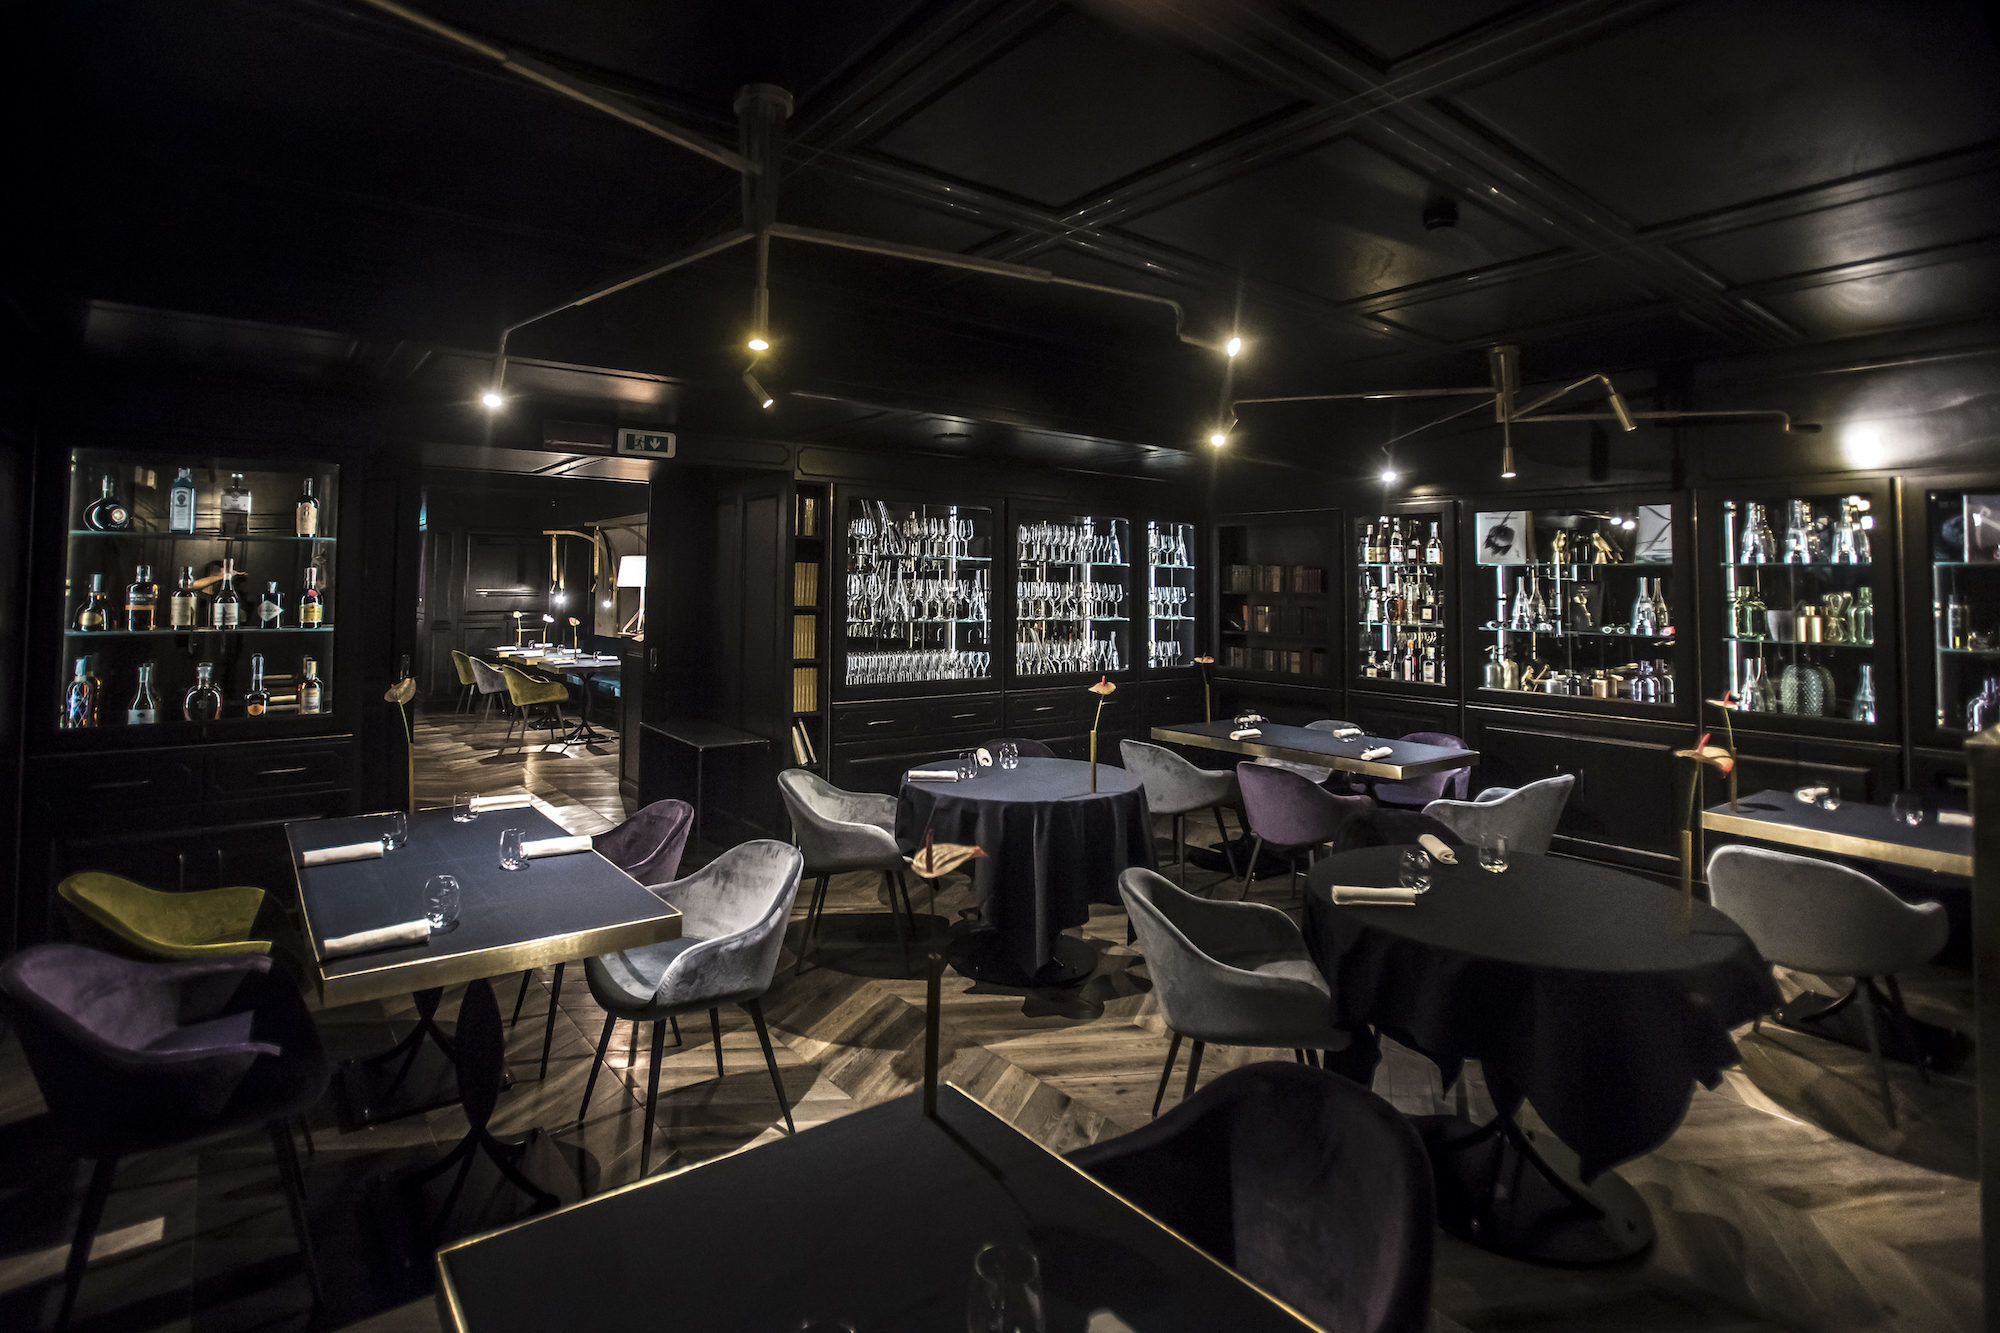 ... This Grande Dame On The Champs Élysées Into One Of The Most  Forward Looking Concepts In Paris, Featuring Two Restaurants With  Contrasting Personalities.